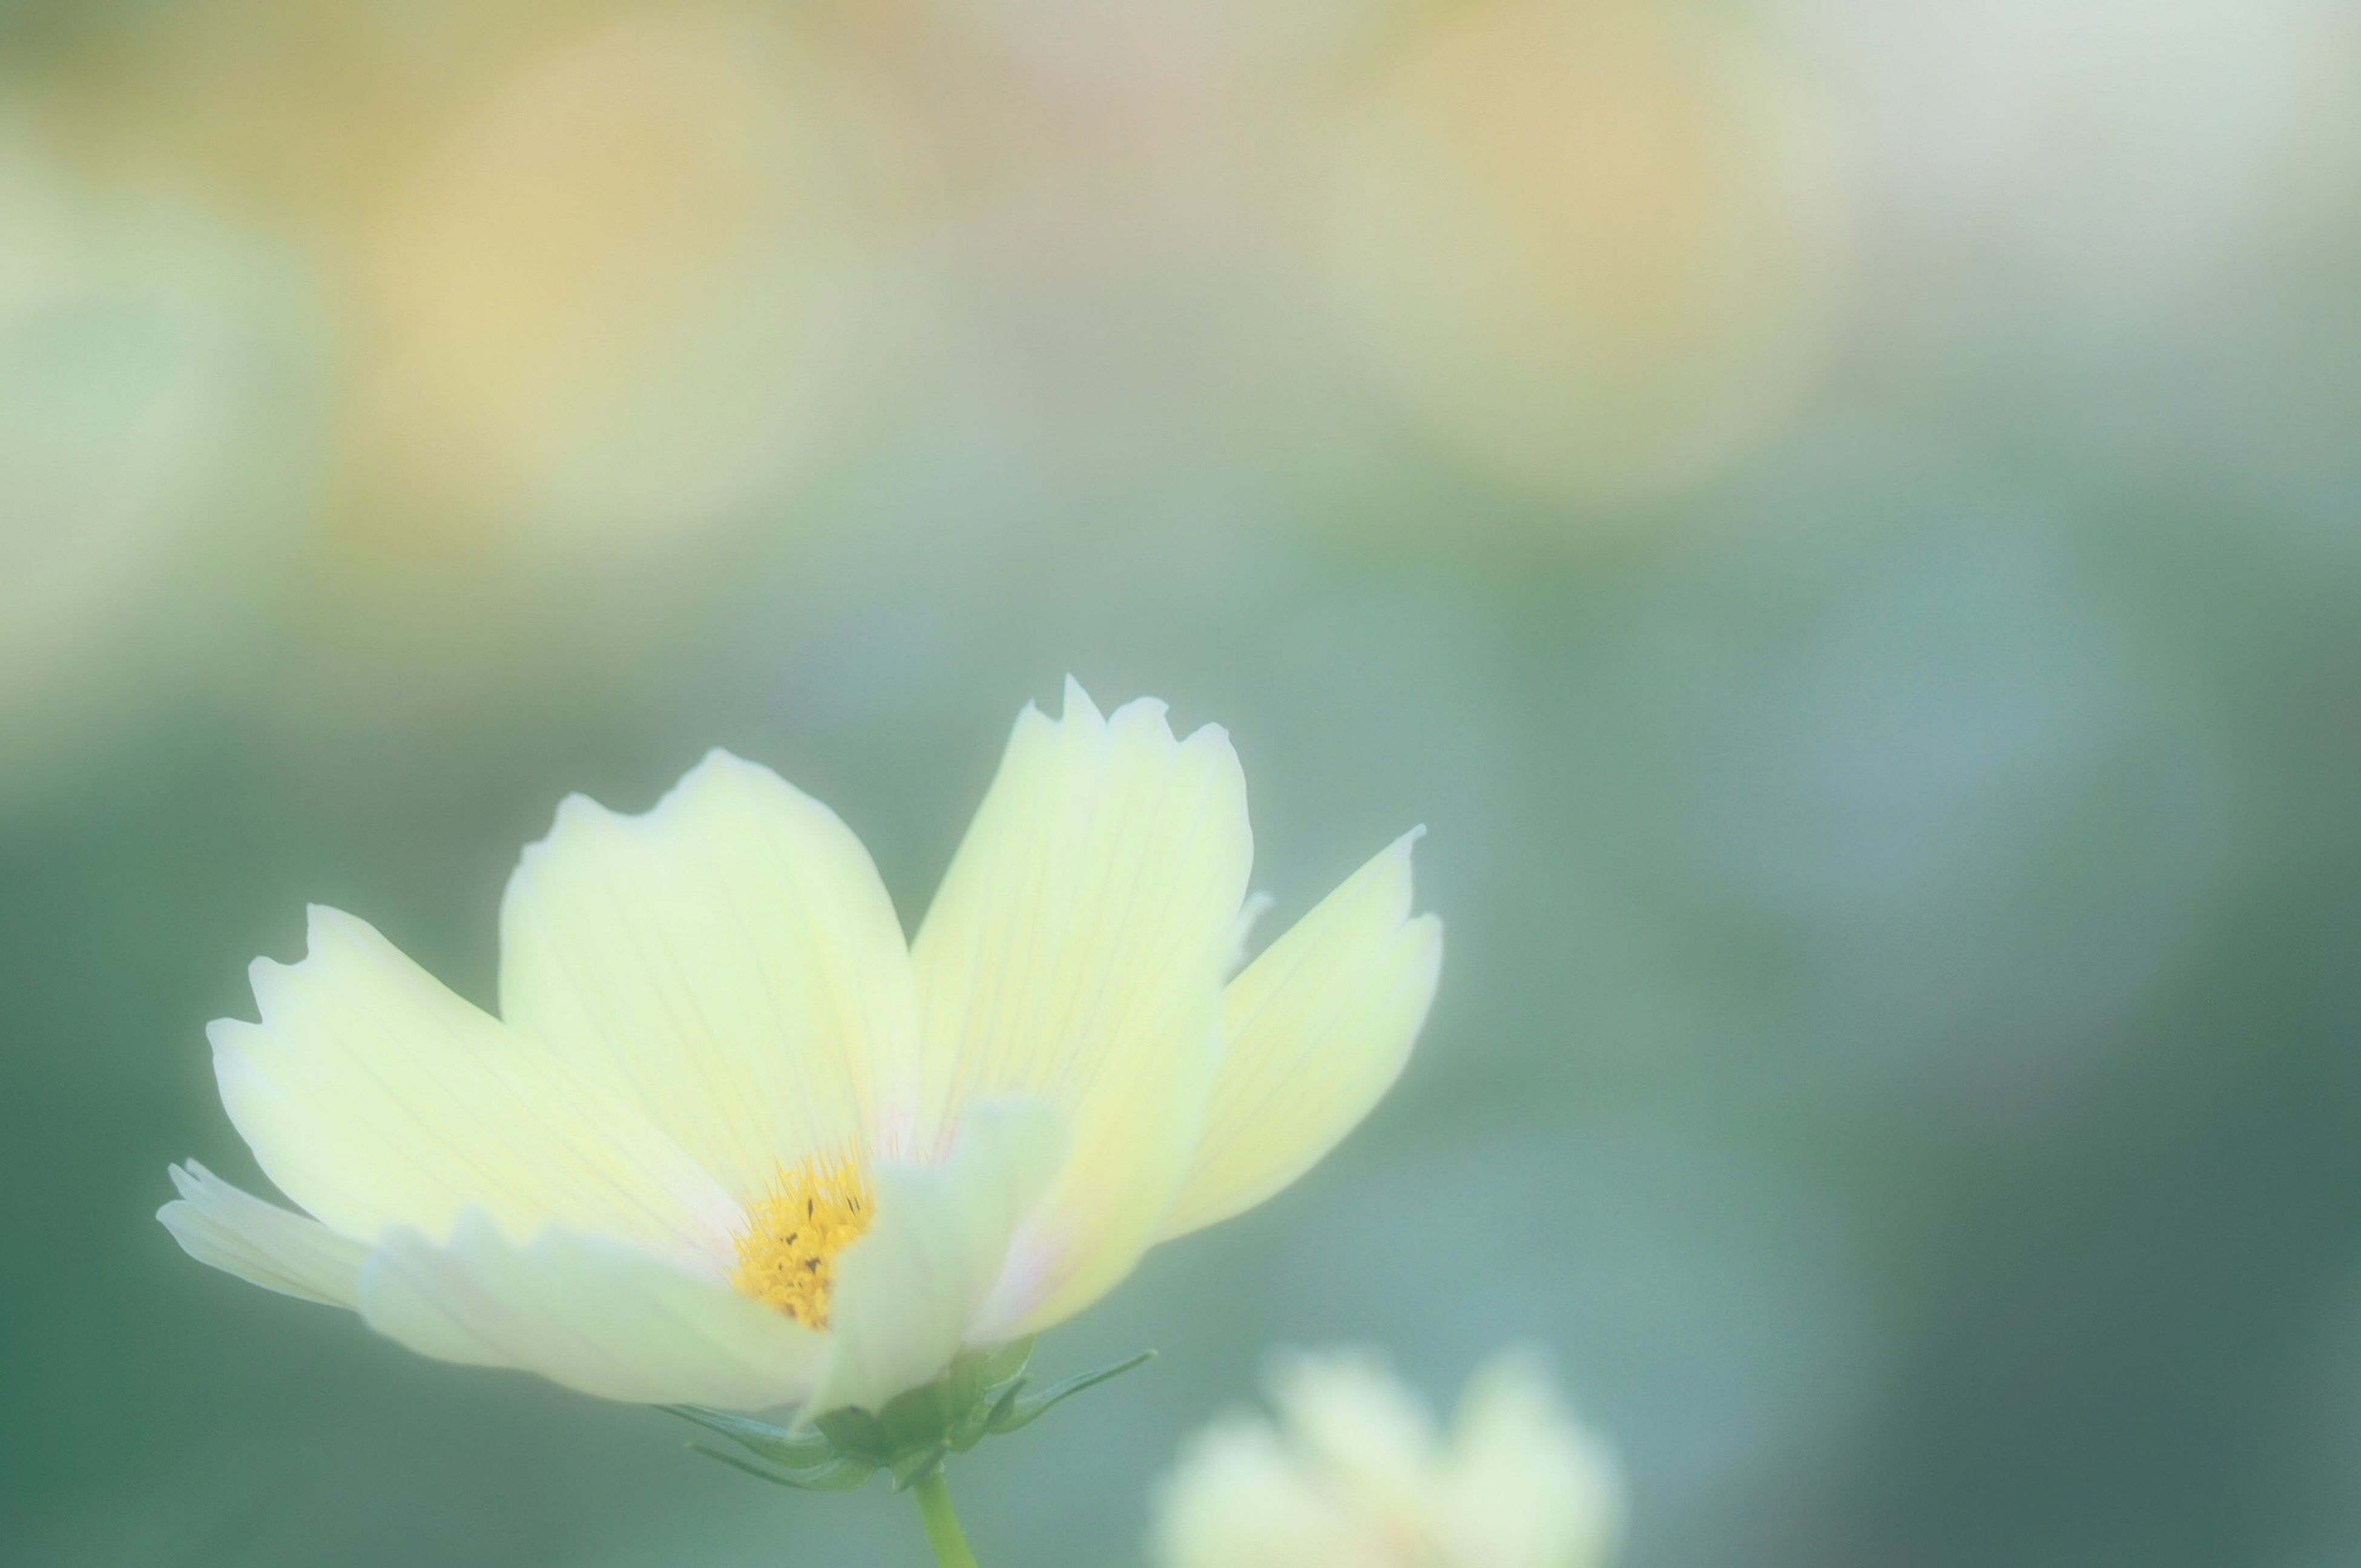 flower, petal, fragility, freshness, flower head, growth, focus on foreground, beauty in nature, blooming, close-up, nature, plant, white color, in bloom, selective focus, yellow, single flower, stem, pollen, outdoors